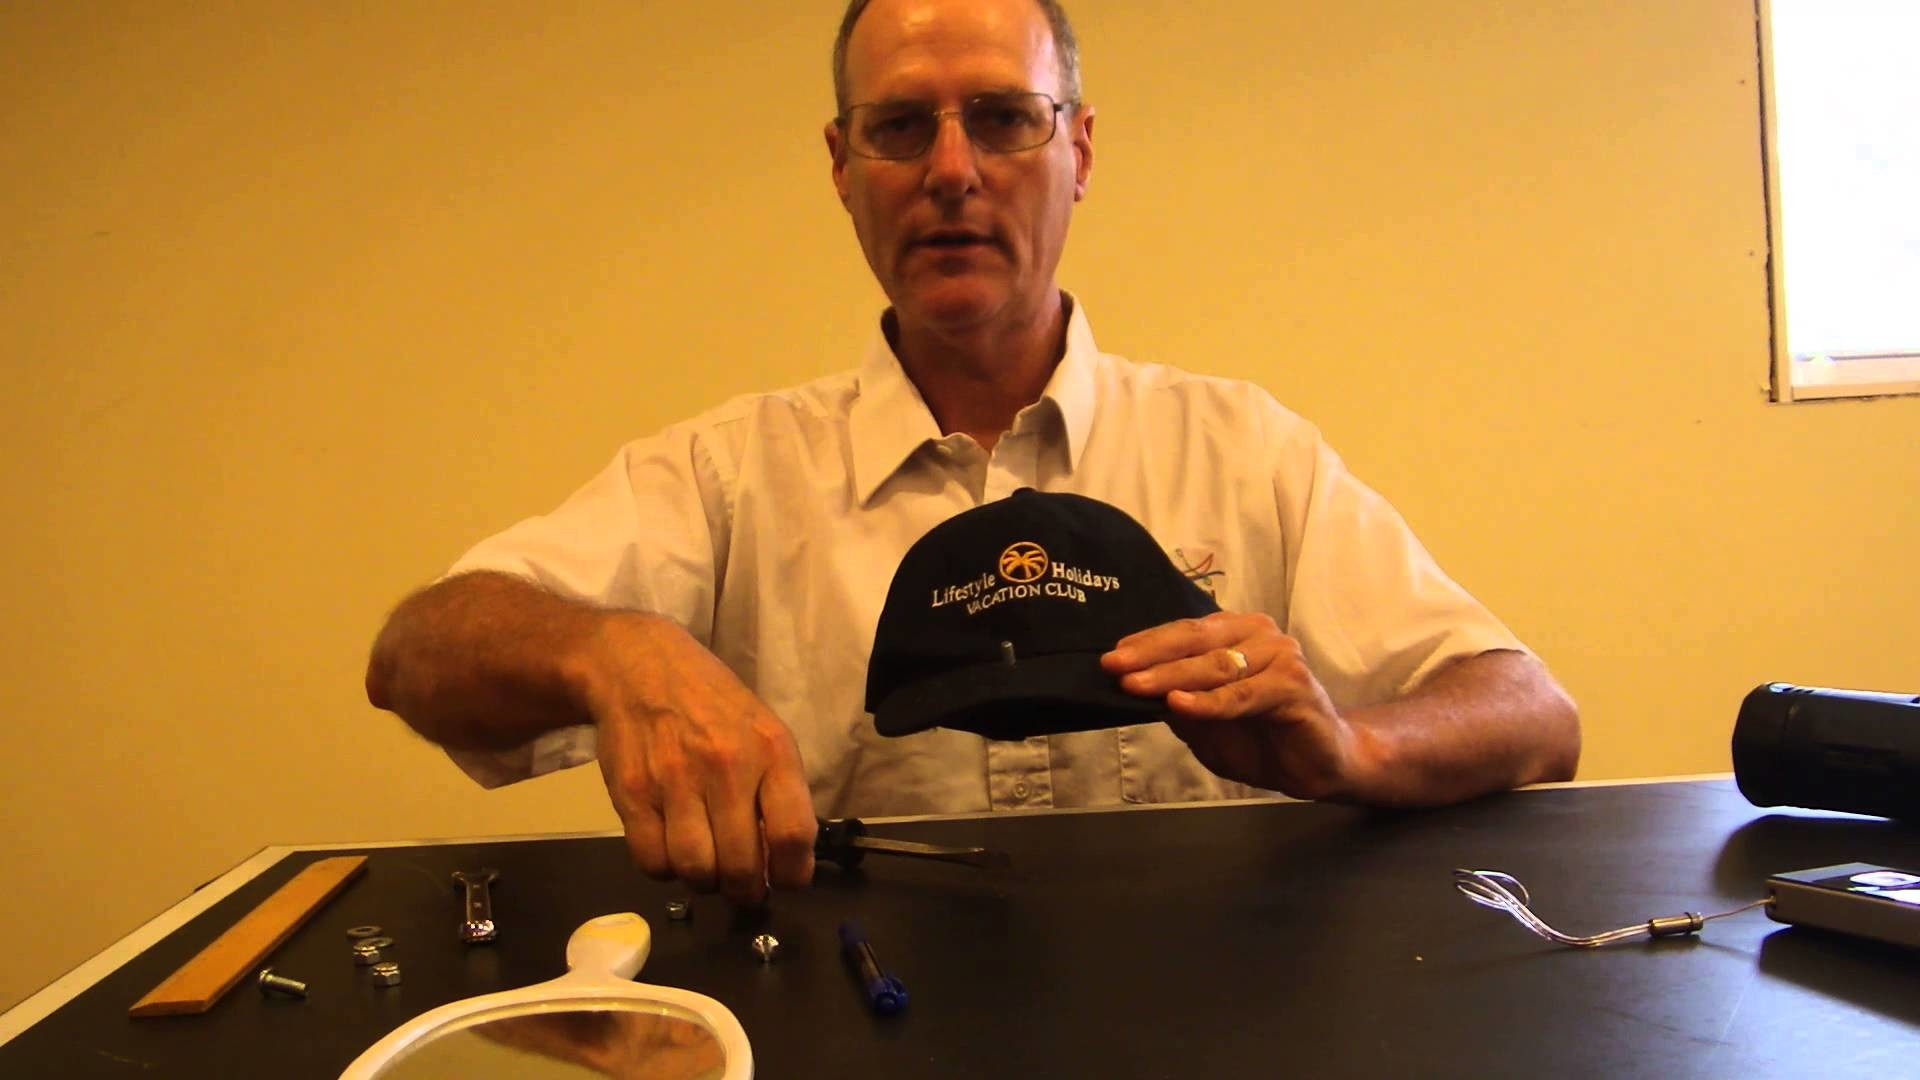 DIY hands free hat mount action video camera baseball cap